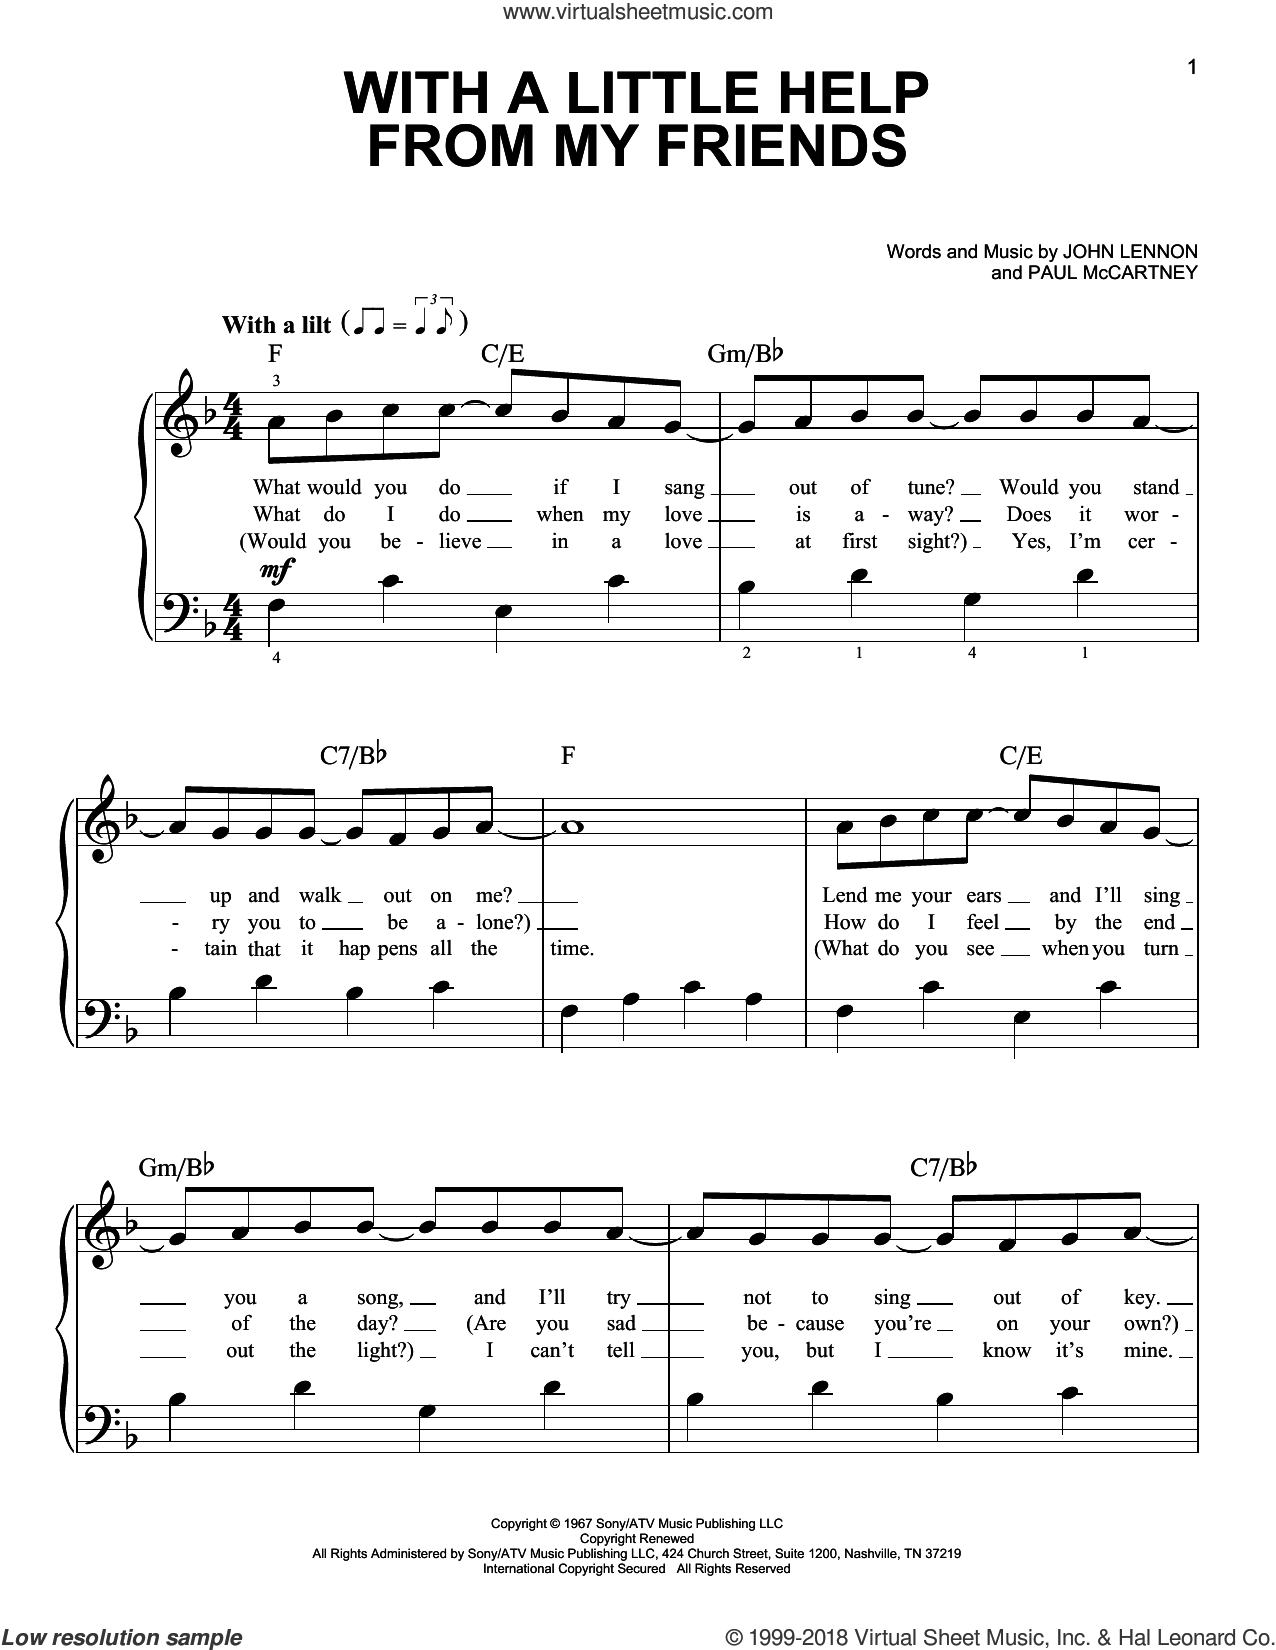 With A Little Help From My Friends sheet music for piano solo (chords) by Paul McCartney